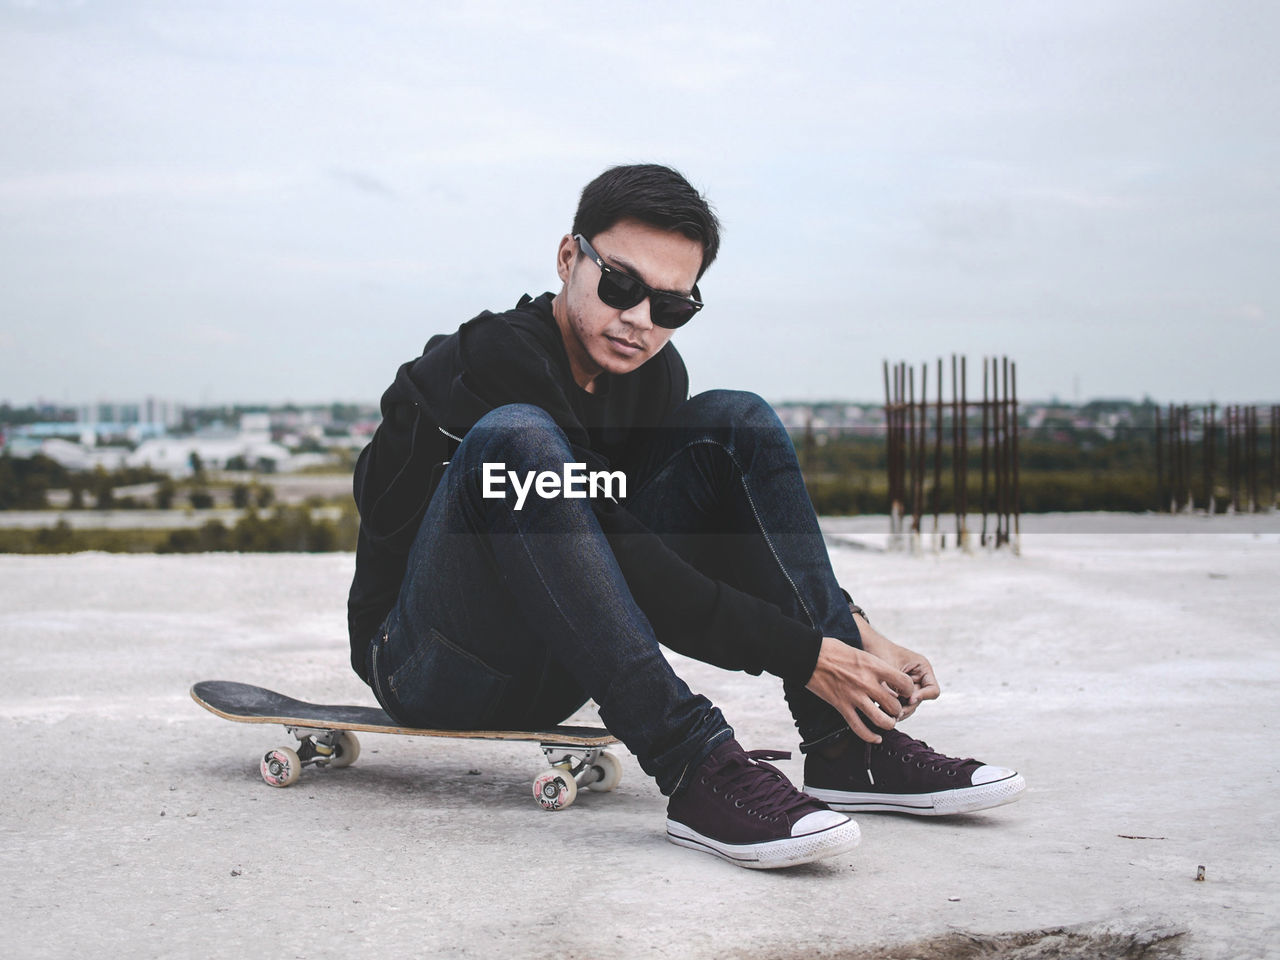 Portrait Of Man Tying Shoelace While Sitting On Skateboard At Incomplete Building